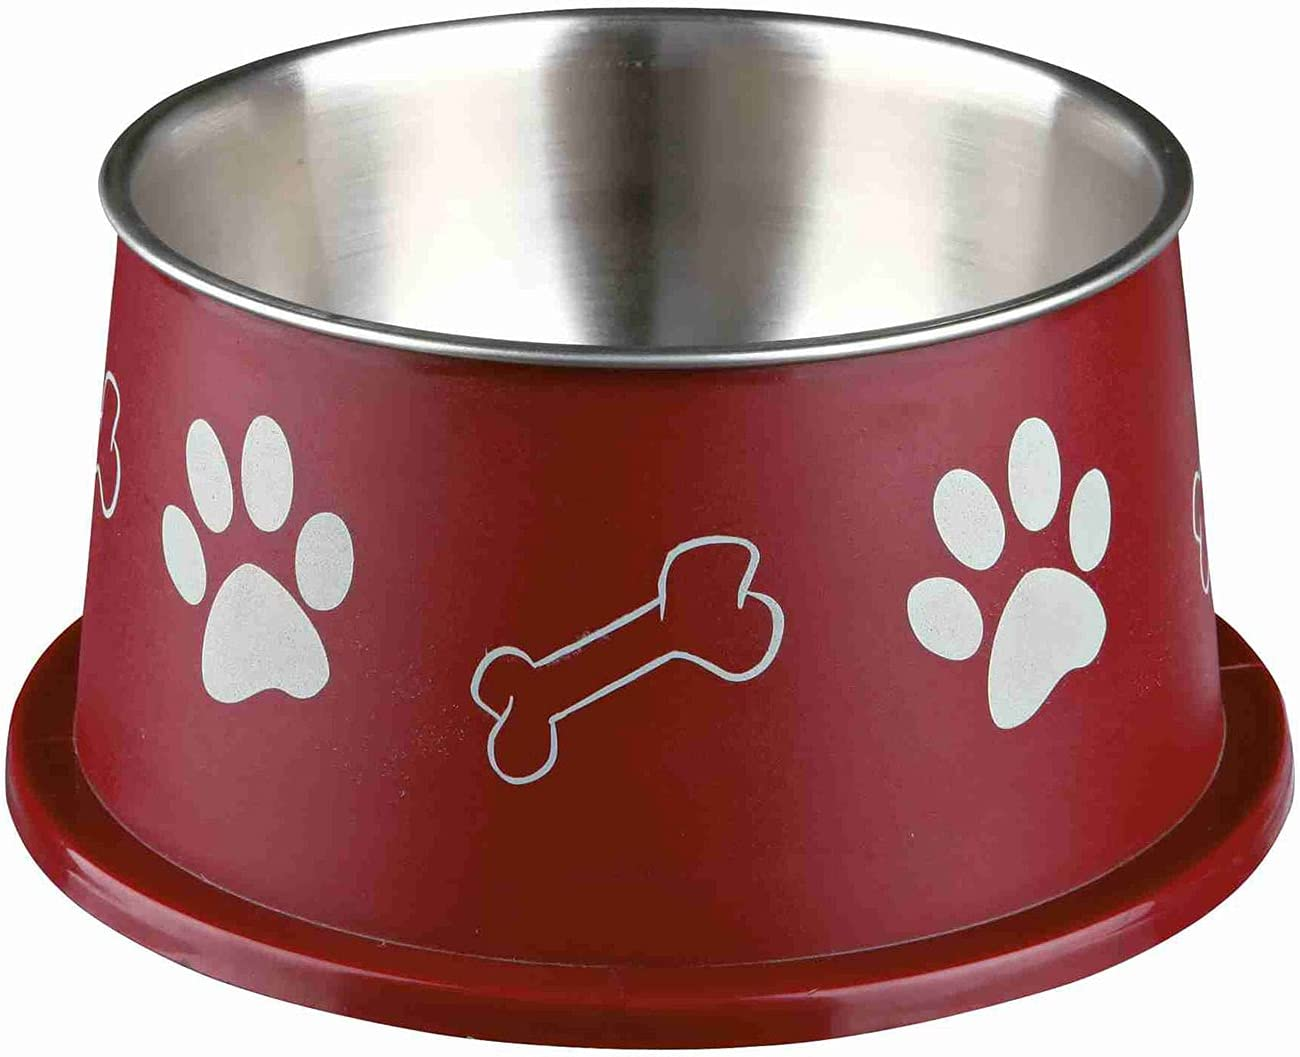 Trixie Long-ear Bowl, Stainless Steel, Plastic Coated, 0.9 L / O 15cm